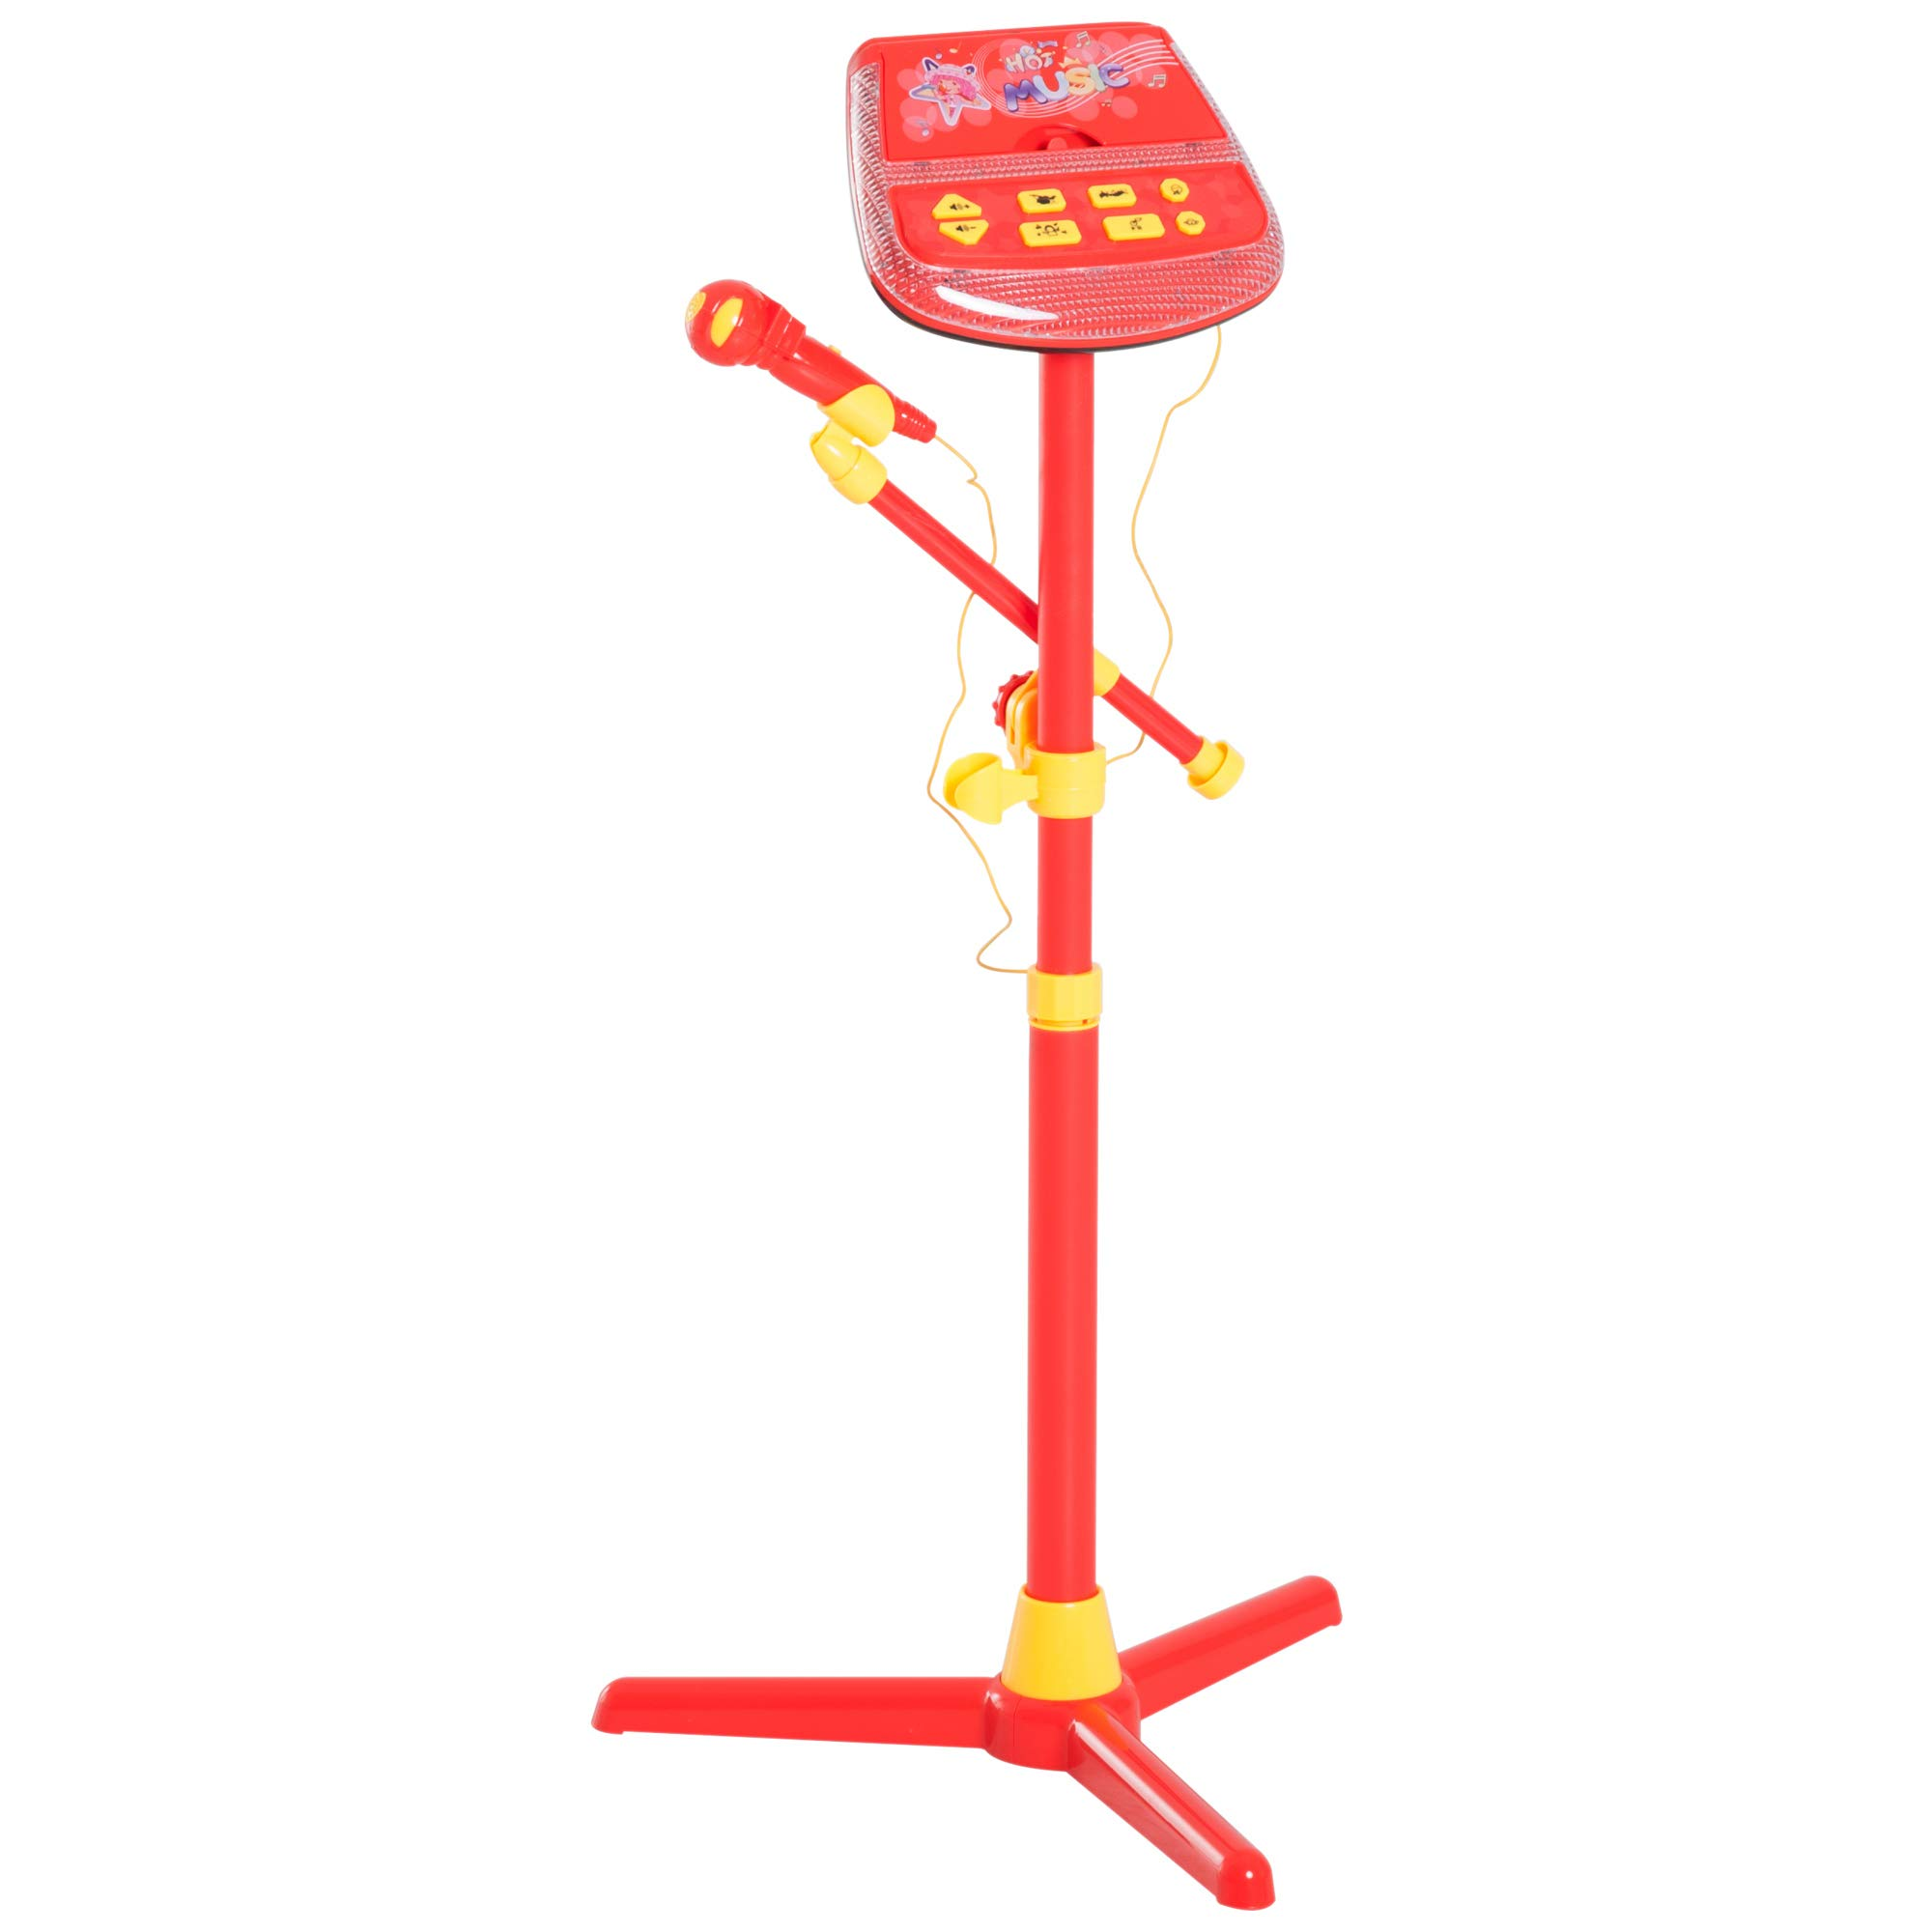 Qaba Kids Karaoke Machine Toy Play Set Music Lights with Microphones & Adjustable Stand - Red